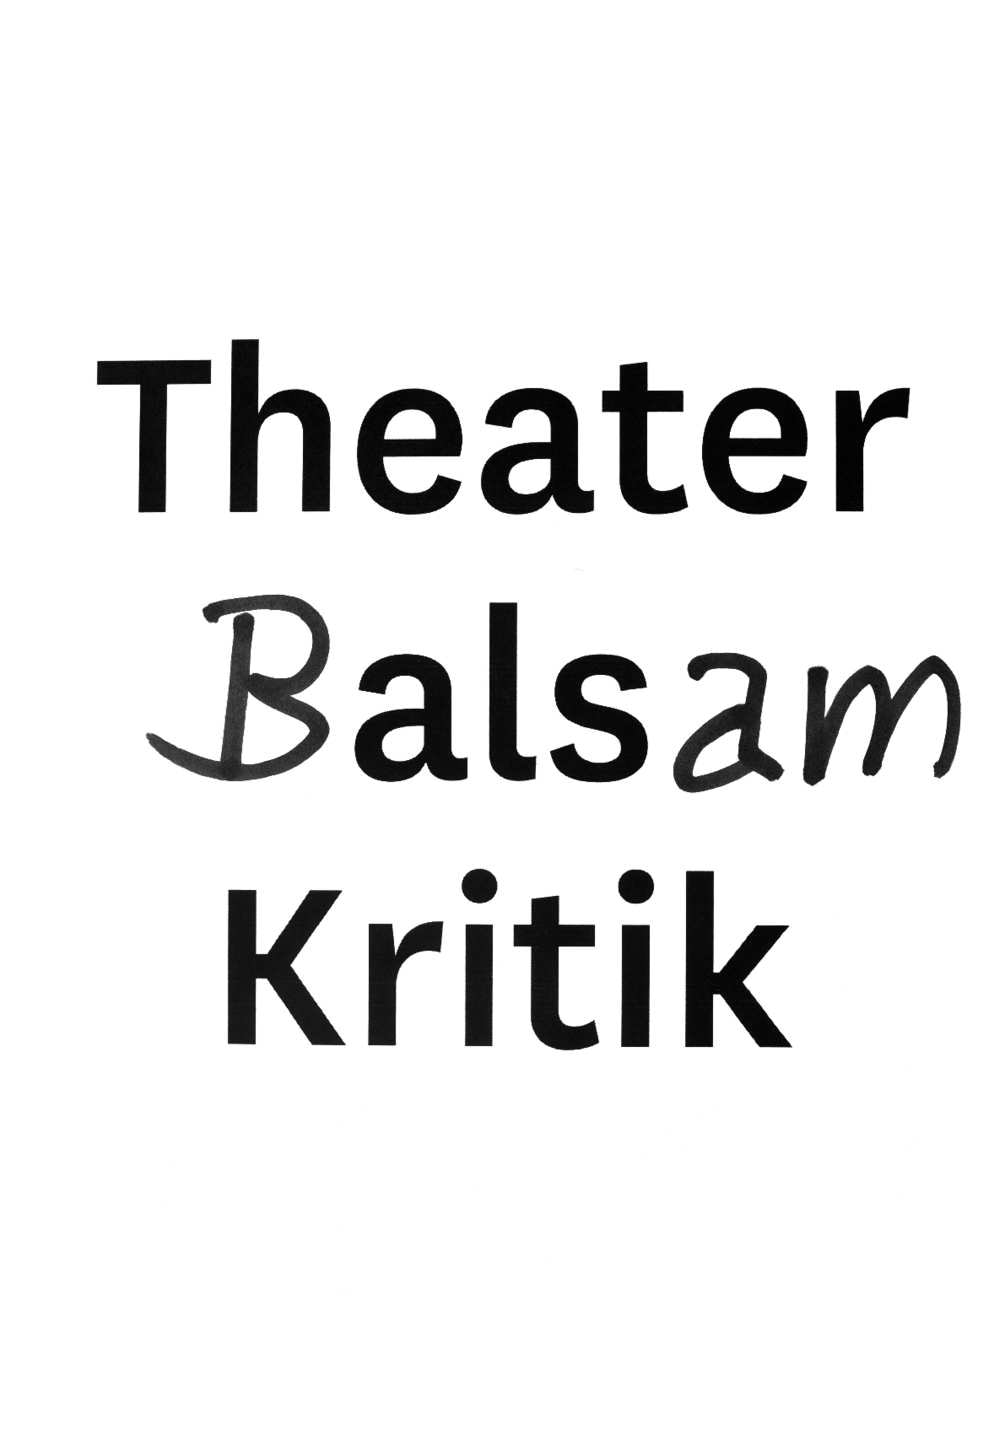 theater-as-critique-slip-18-1005x1435px